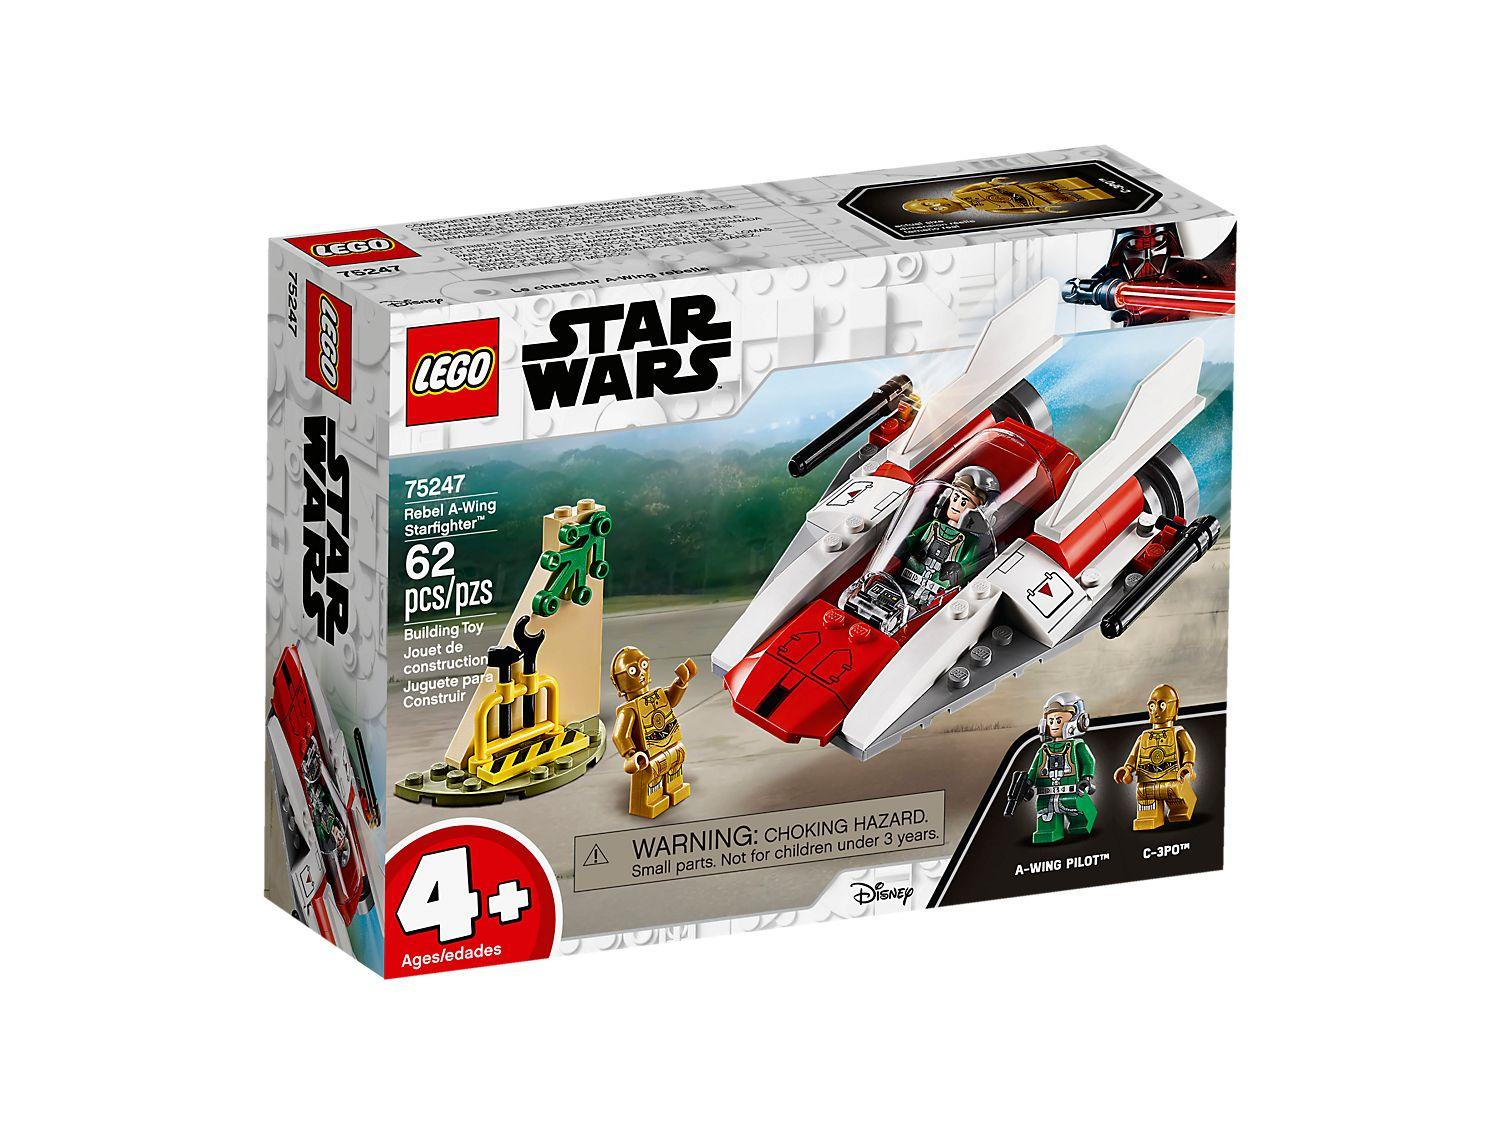 Lego Star Wars Rebel A-Wing Starfighter (75247)